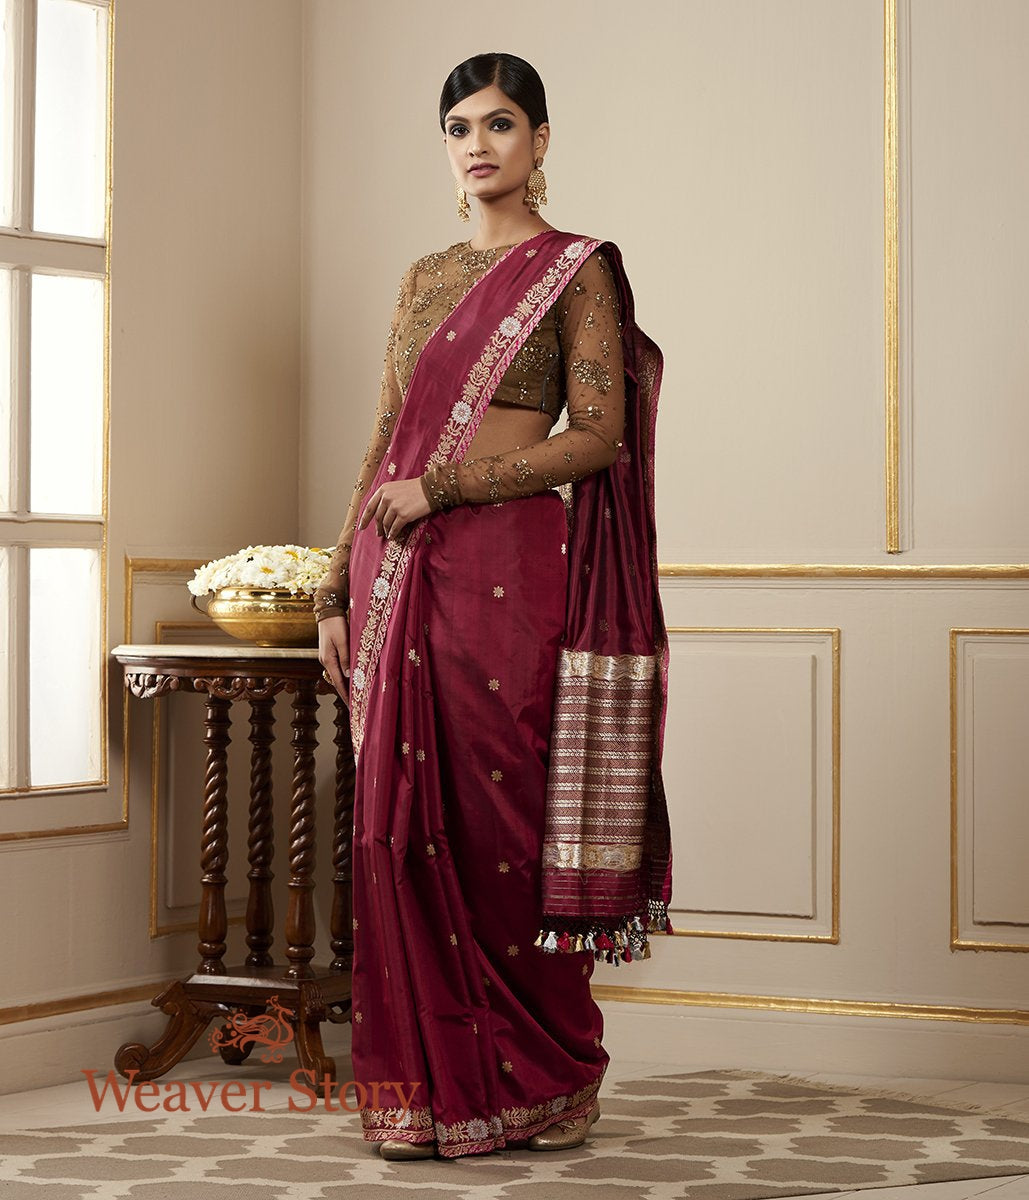 Handwoven Burgundy Banarasi Saree with Kadhwa Booti and Delicate Floral Border